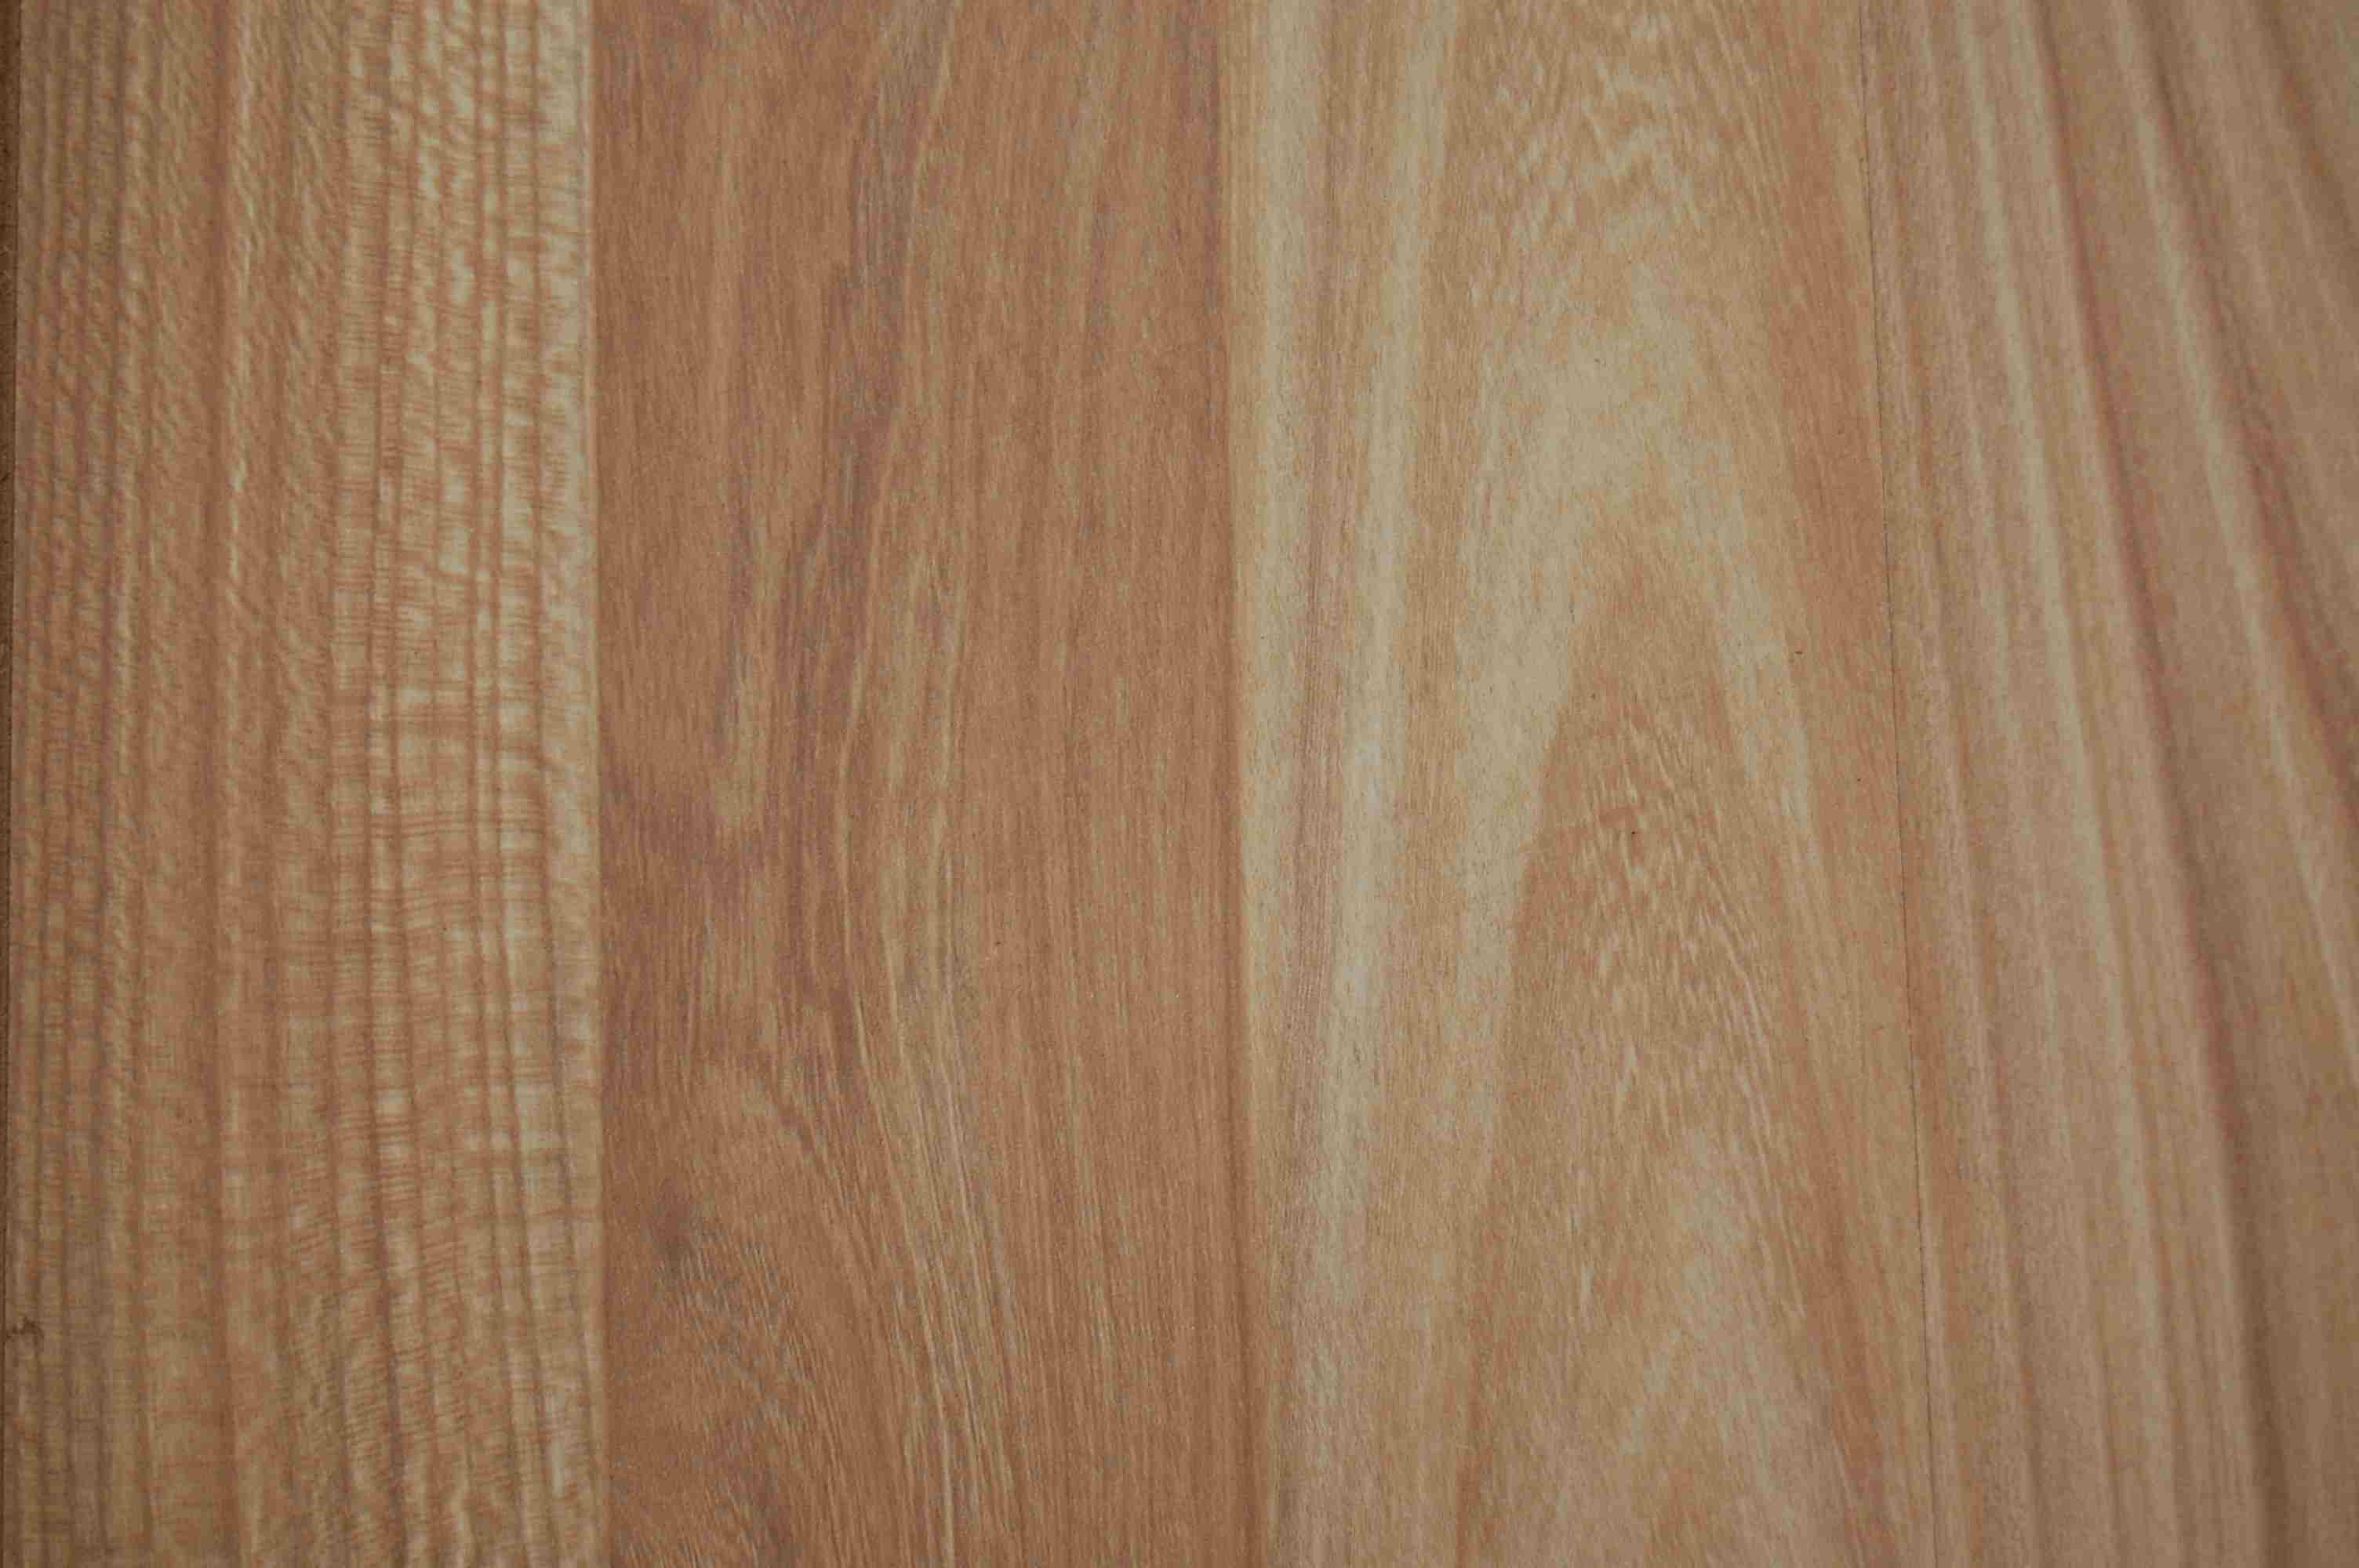 Laminate flooring wood flooring laminate flooring for Which laminate flooring